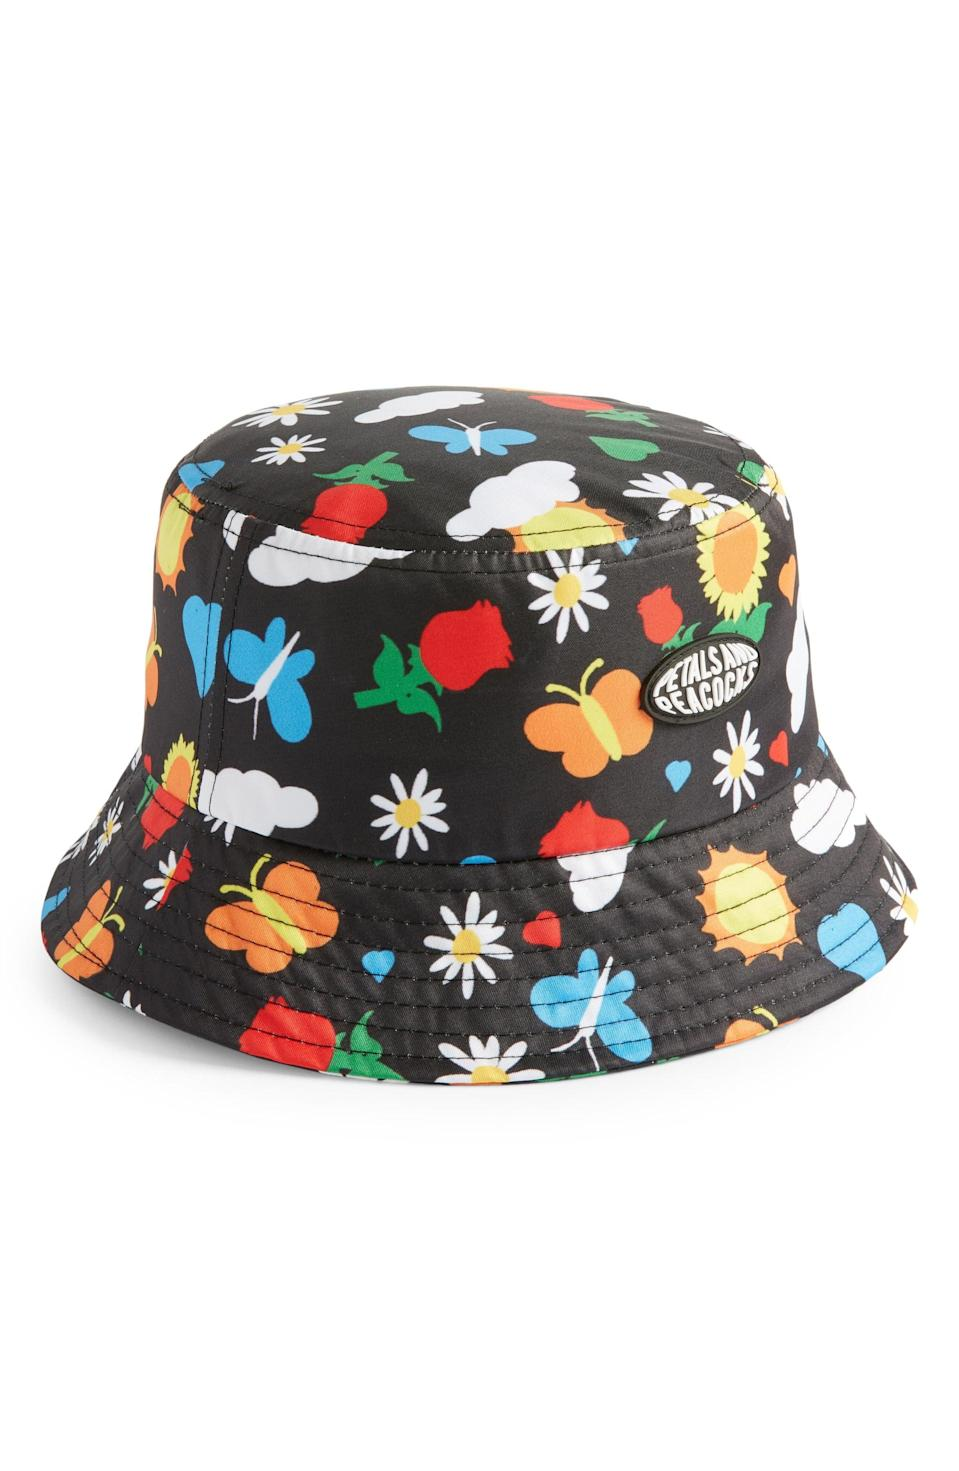 <p>If spring was an accessory, it would be this <span>Petals and Peacocks Flourish Bucket Hat</span> ($28), no doubt!</p>